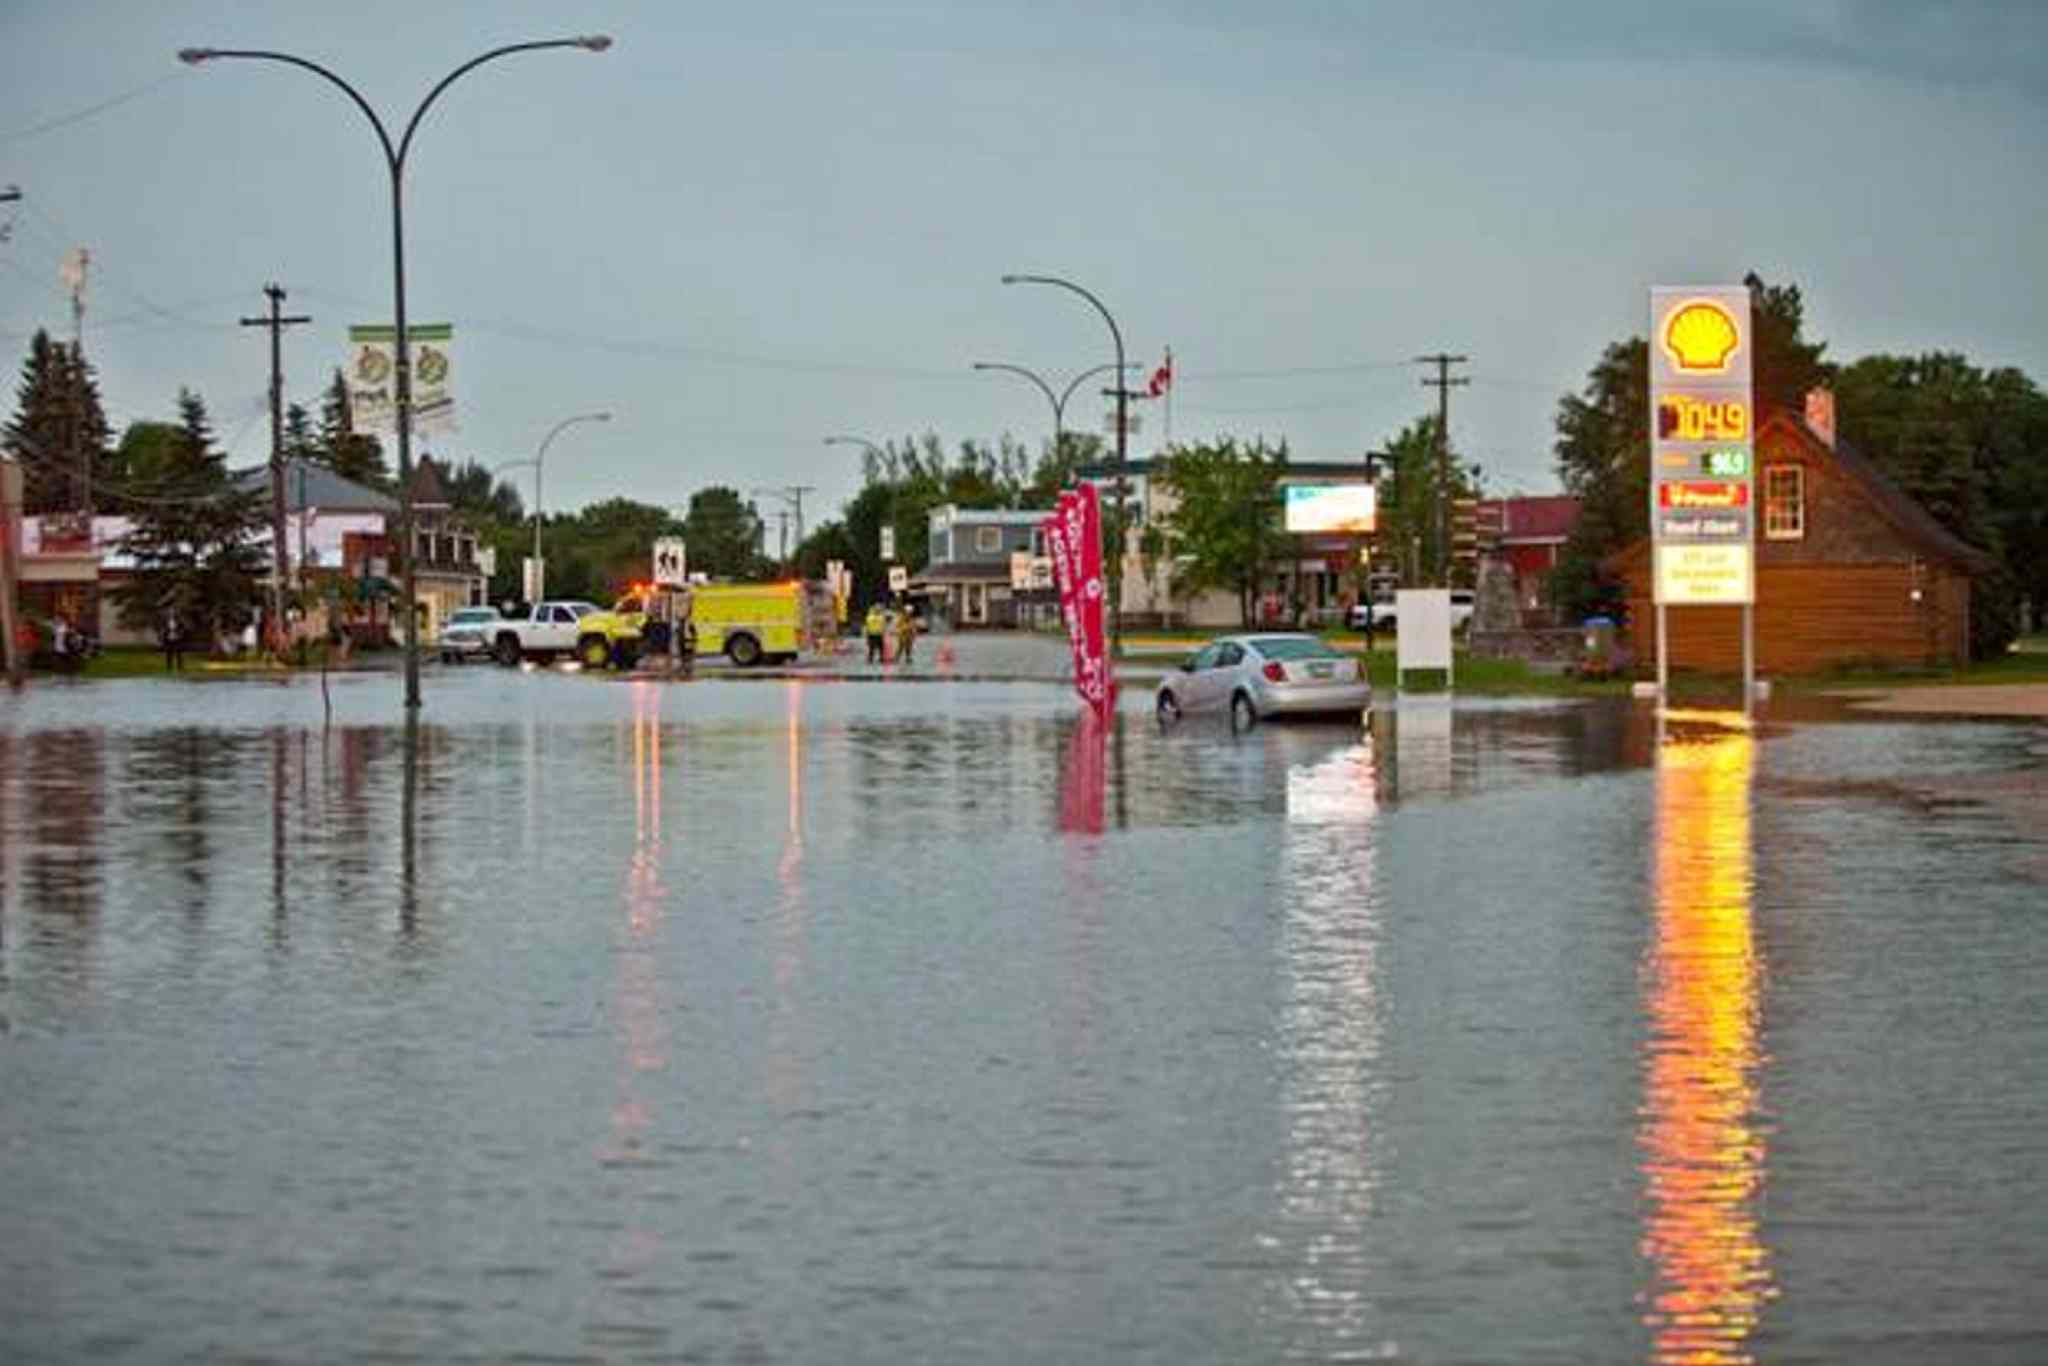 St. Pierre Jolys was deluged with rain, resulting in flooding.